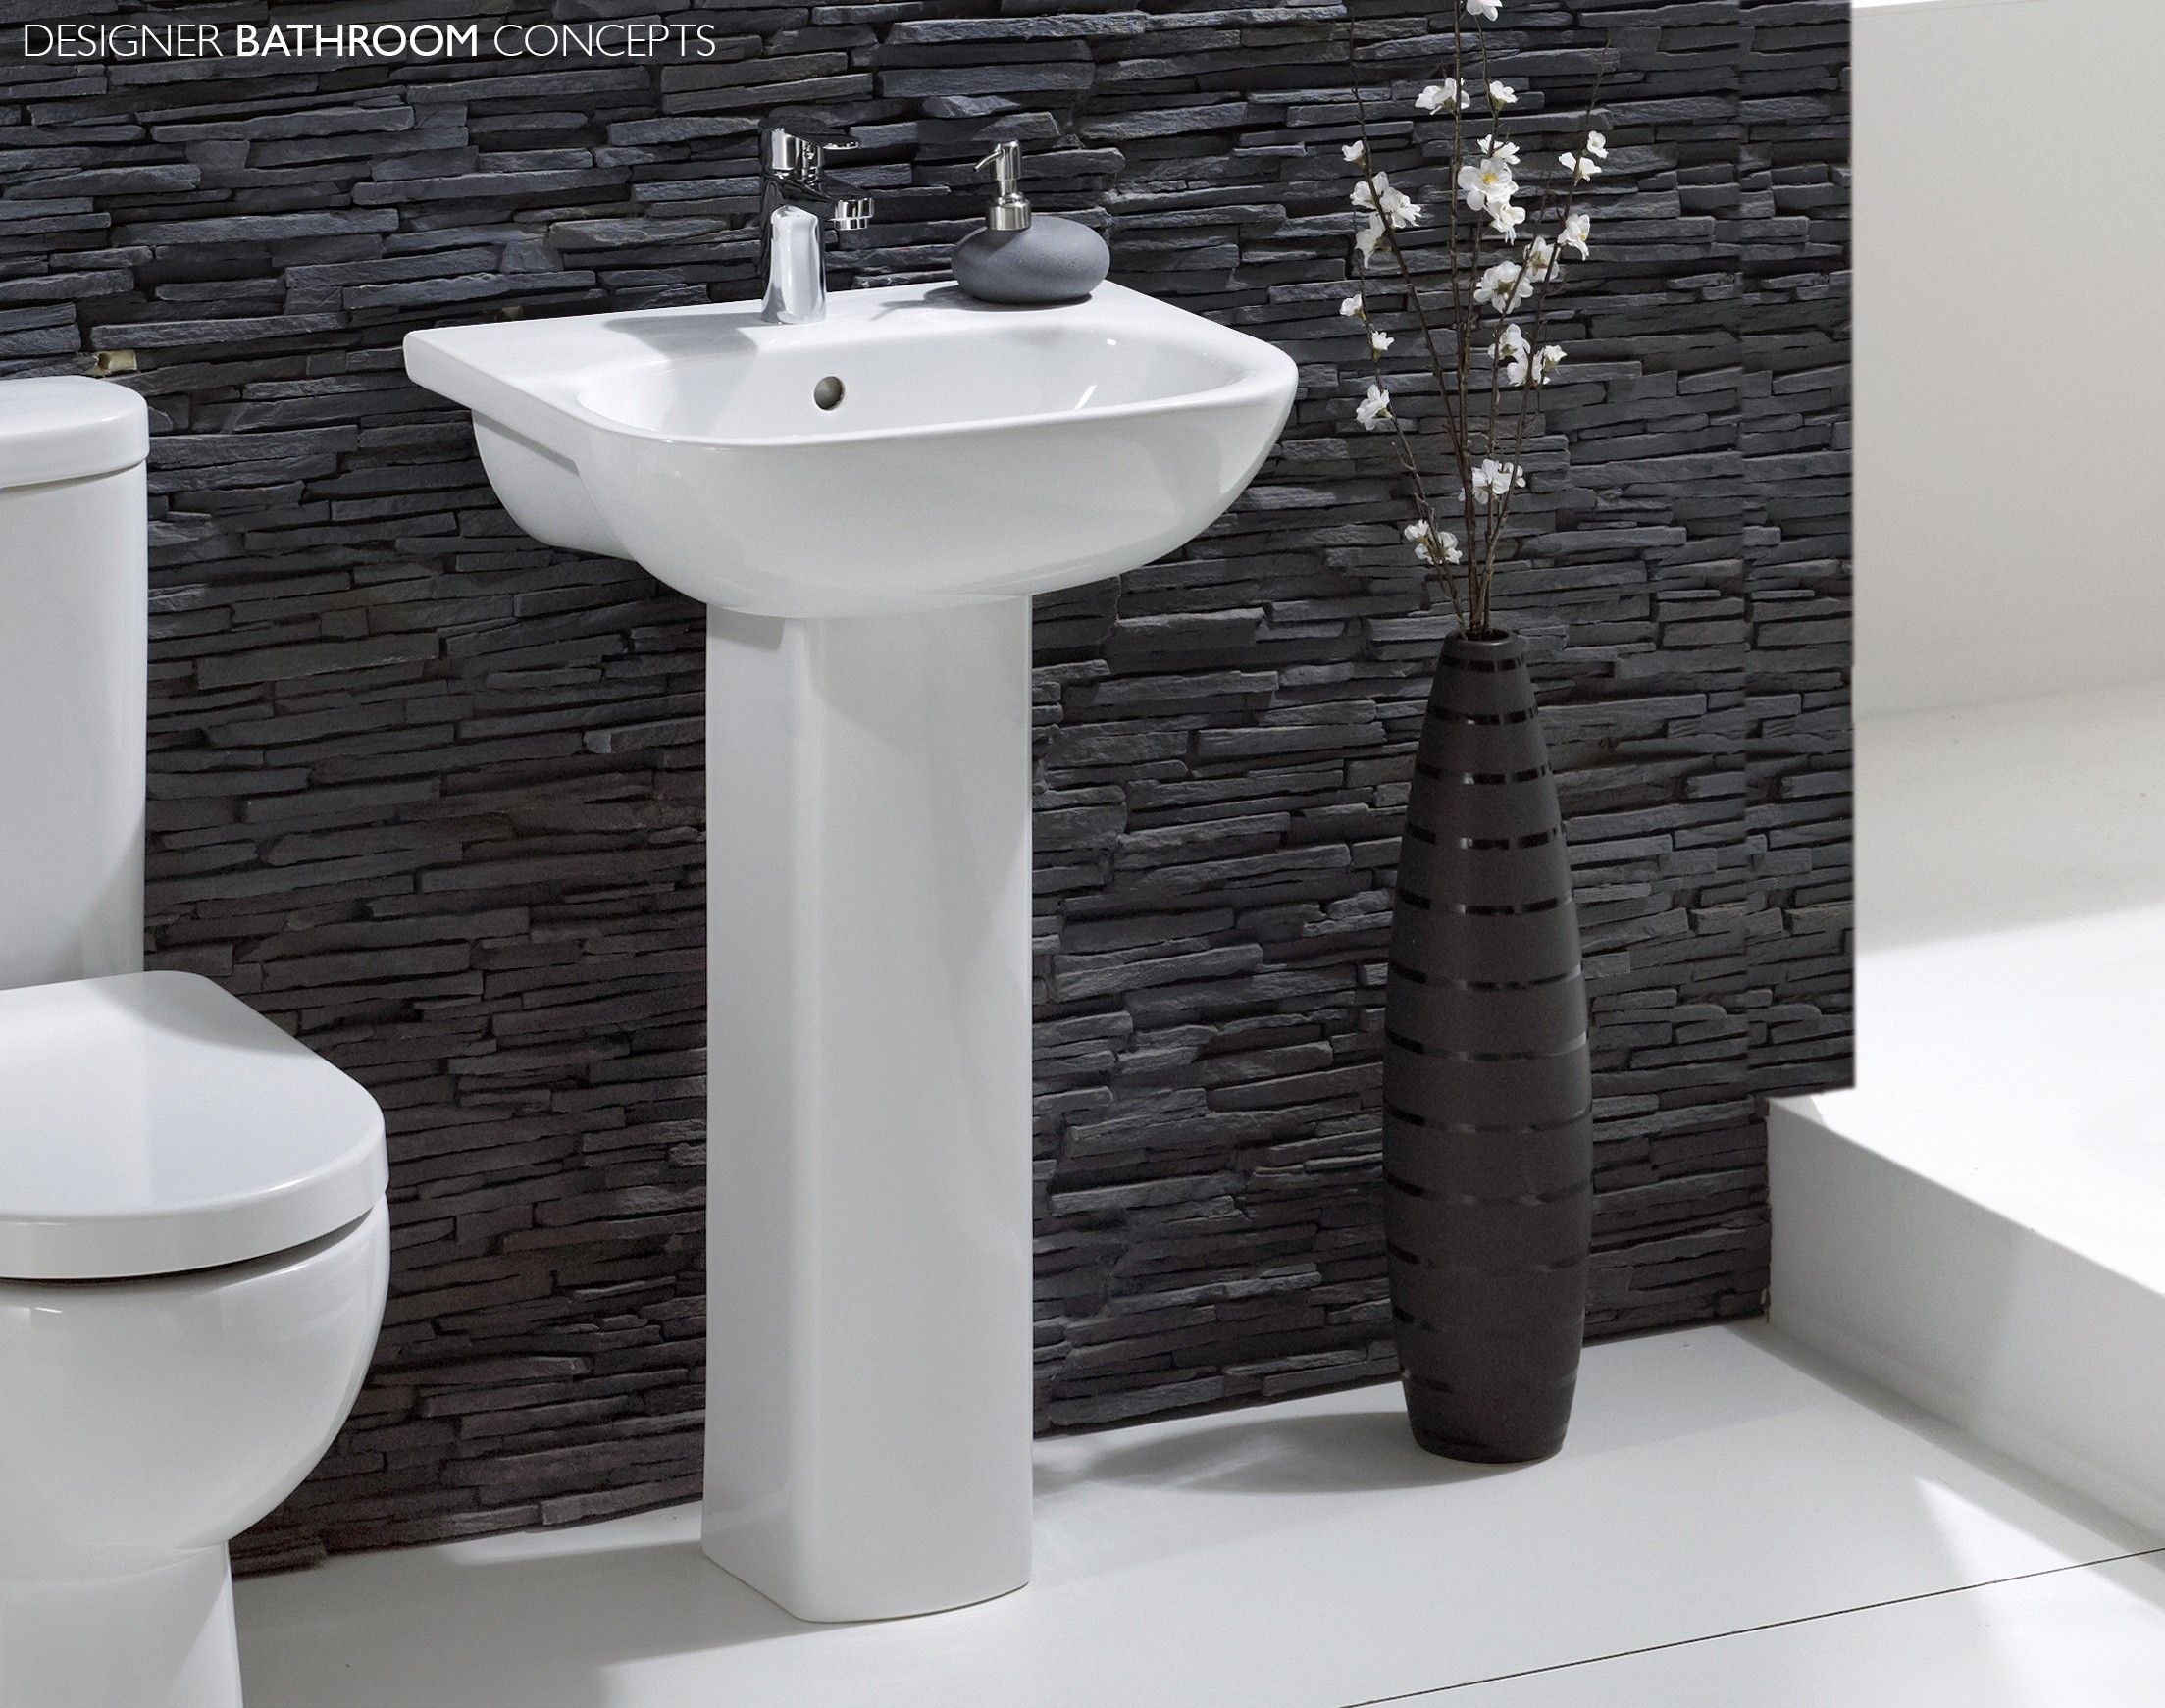 full size design at completebathrooms soothing bathroom designer bathrooms modern complete state with tiles cheap